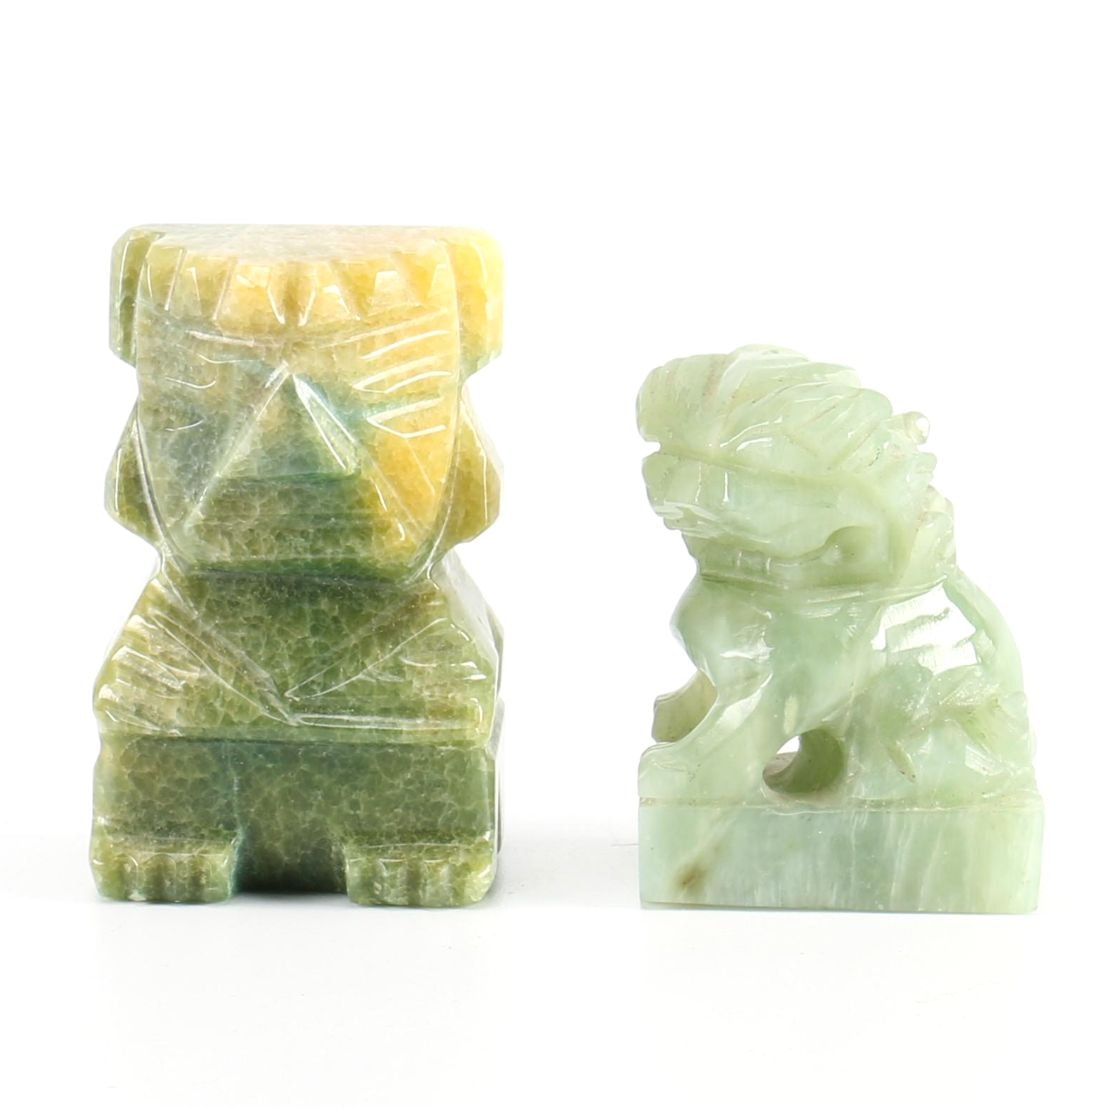 Bowenite and Dyed Agate Figurines